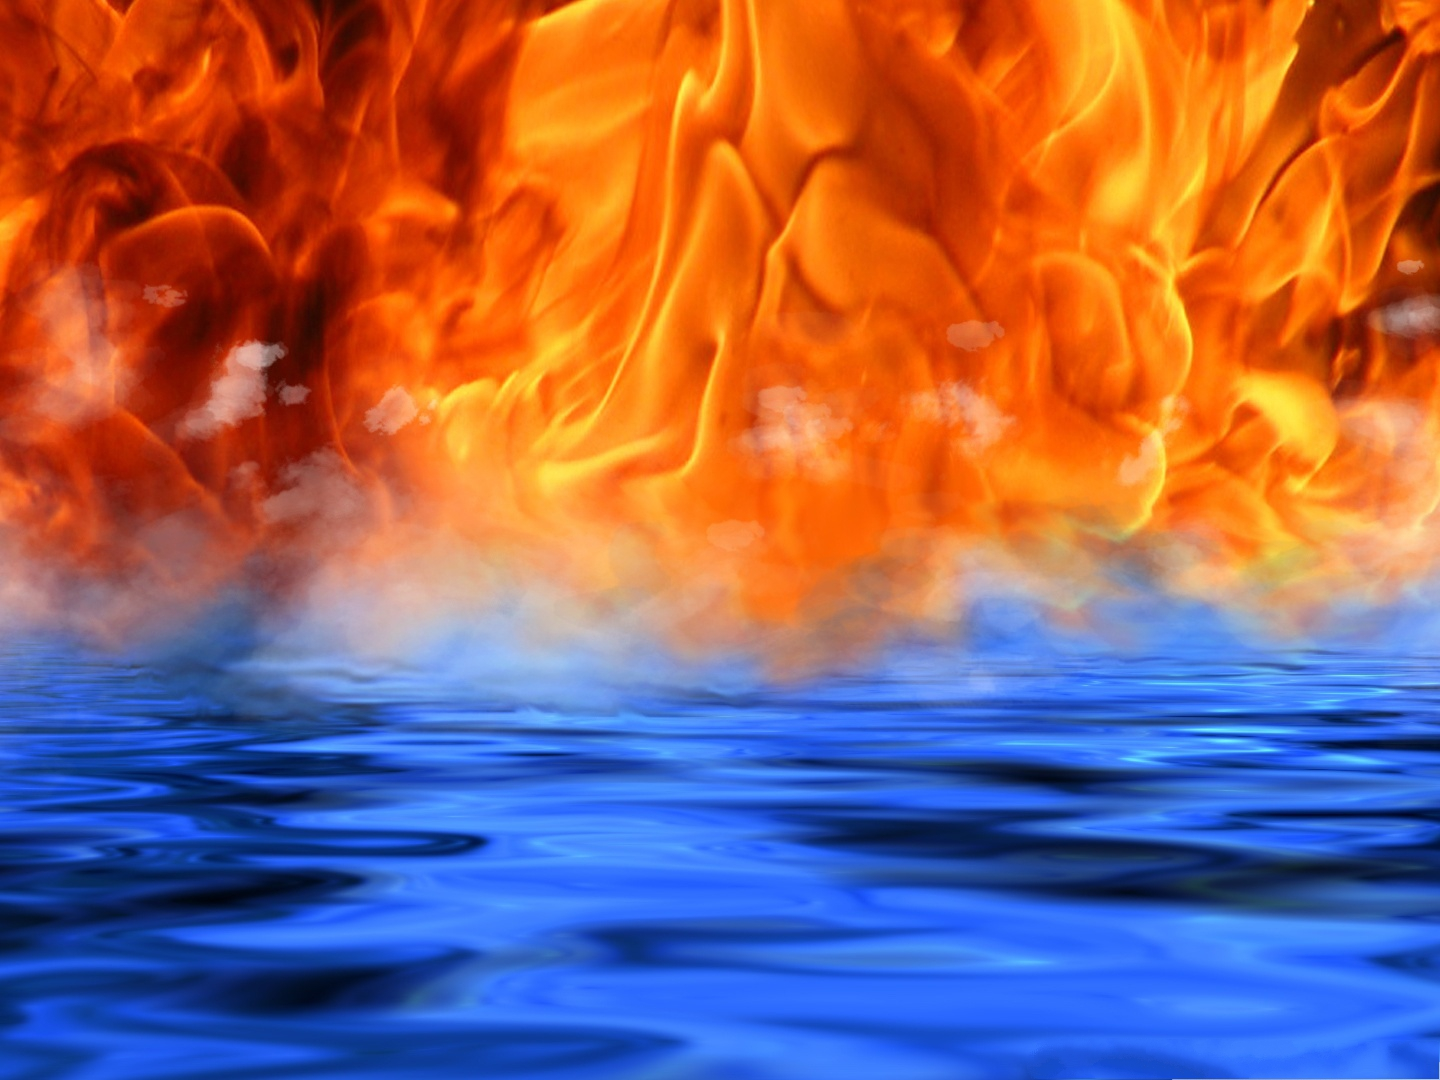 Click To Free Download The Wallpaper  HD Water Wallpaper, Fire And Water,